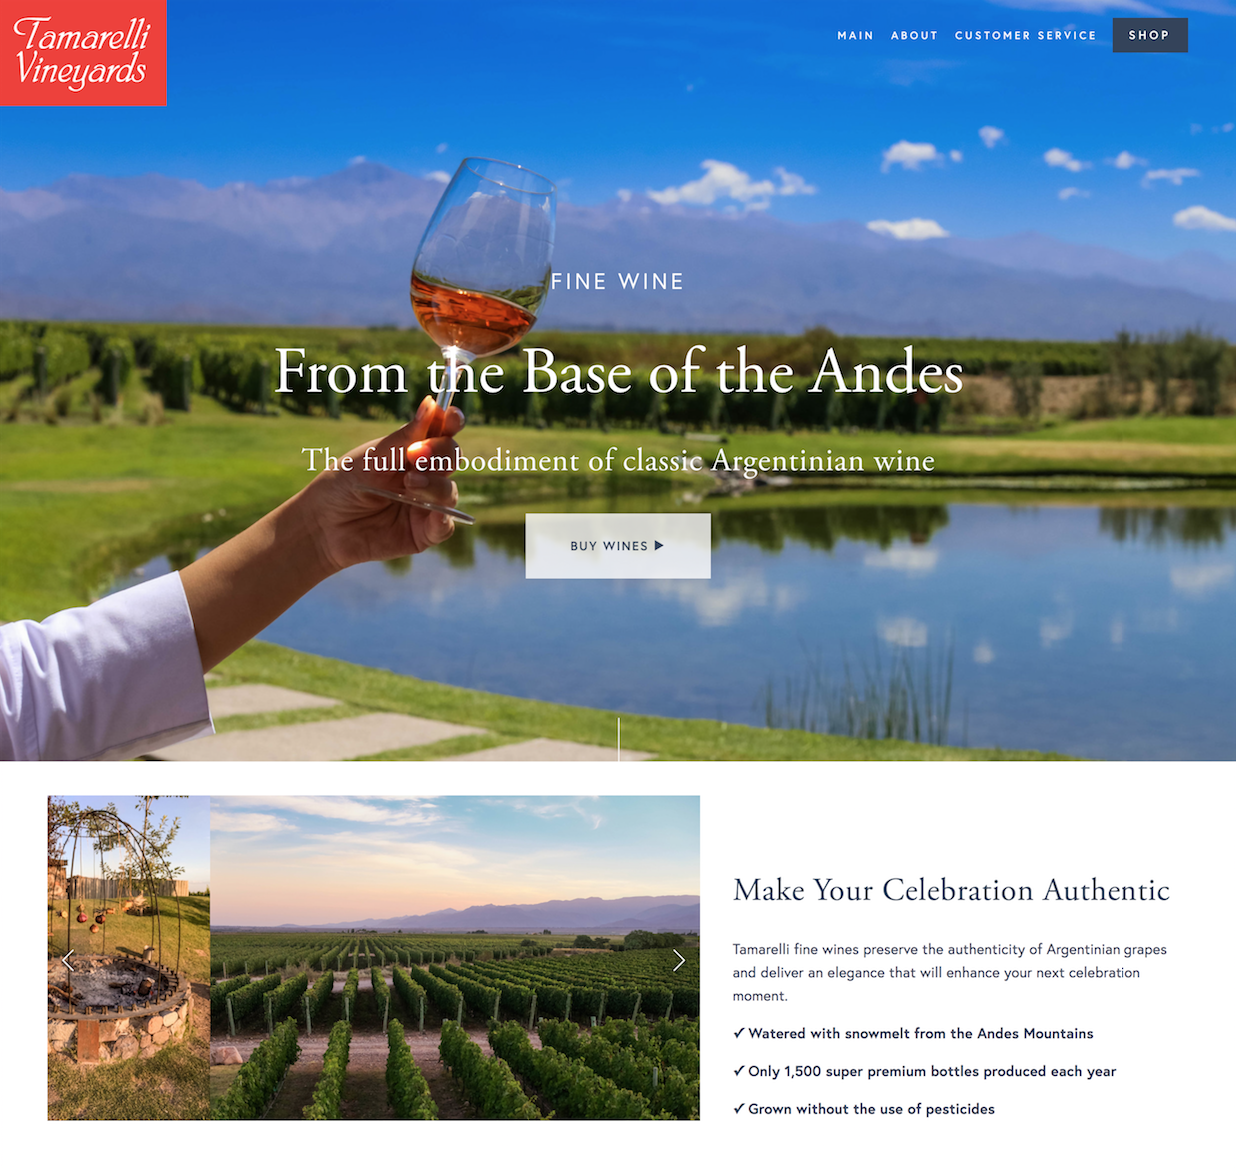 Tamarelli Vineyards - As one of Argentina's premium wine producers, Tamarelli Vineyards® hired MOR Creative with the goal to grow business without diverting focus from their craft. We clarified Tamarelli's marketing messages, created a Squarespace Website for their brand, and set up a series of automated emails that on-board new potential customers to the brand.